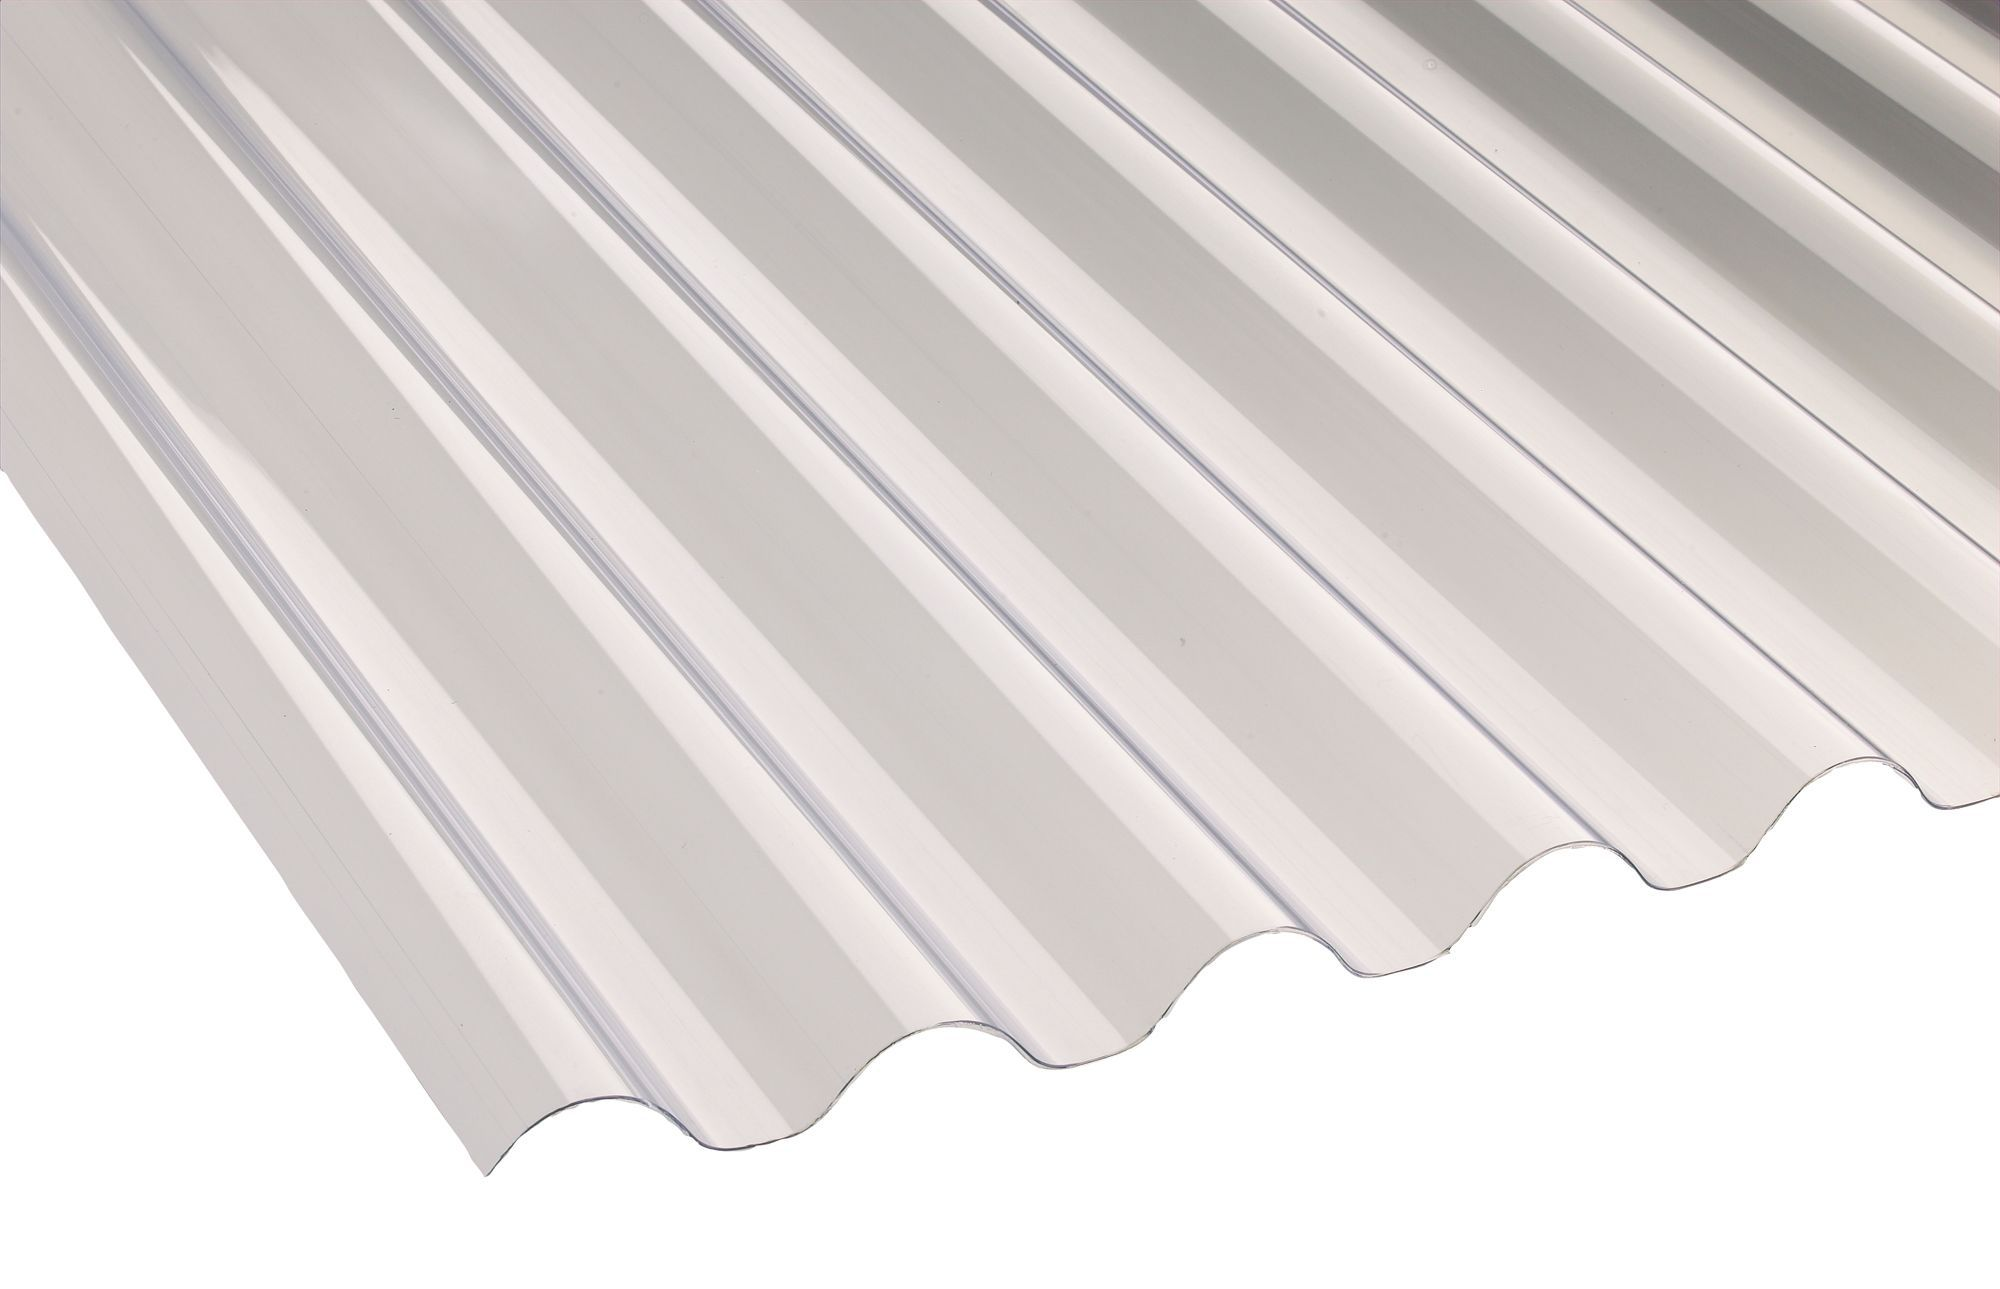 Translucent Pvc Roofing Sheet 3m X 660mm Departments